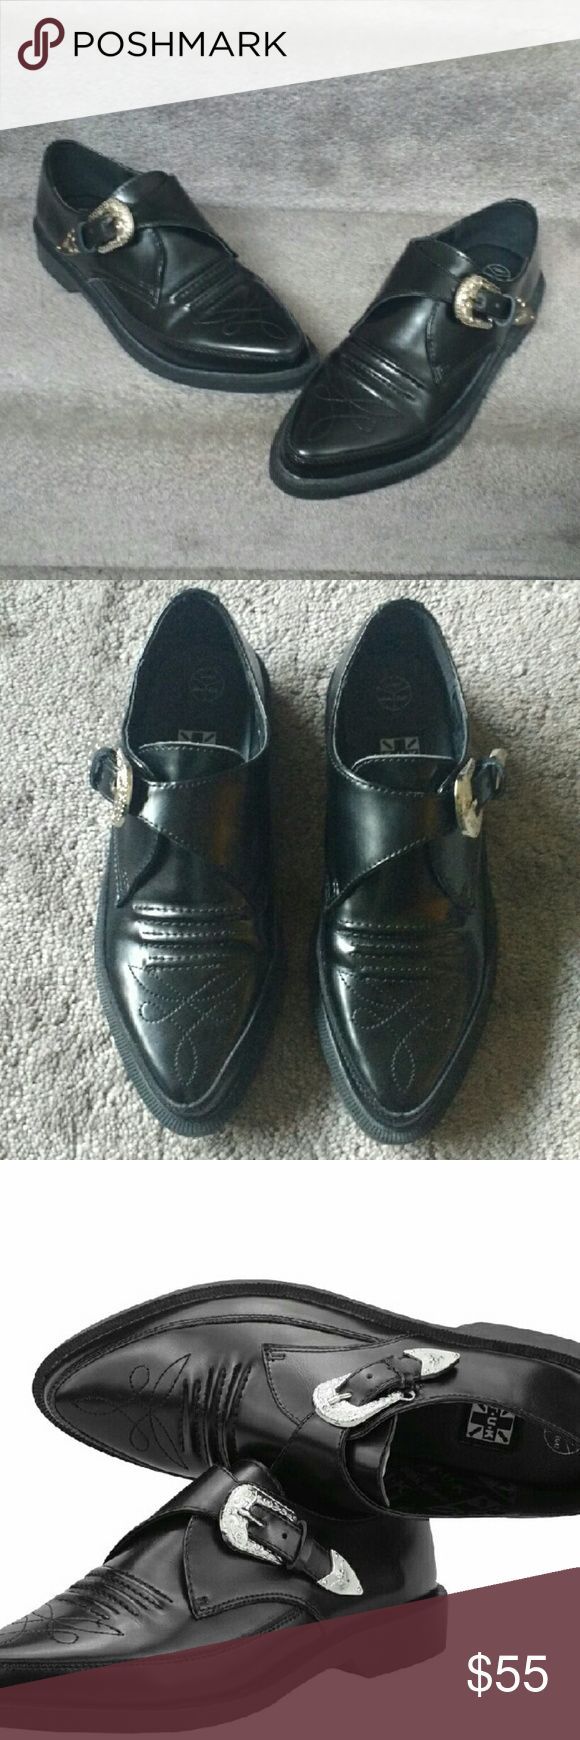 TUK Black Western Jam shoe! Black AMAZING dreamy creepers by T.U.K.  Kind of a traditional flat pointed creeper with a Western style silver buckle on the side. NWOT! Only tried on at home. T.U.K. Shoes